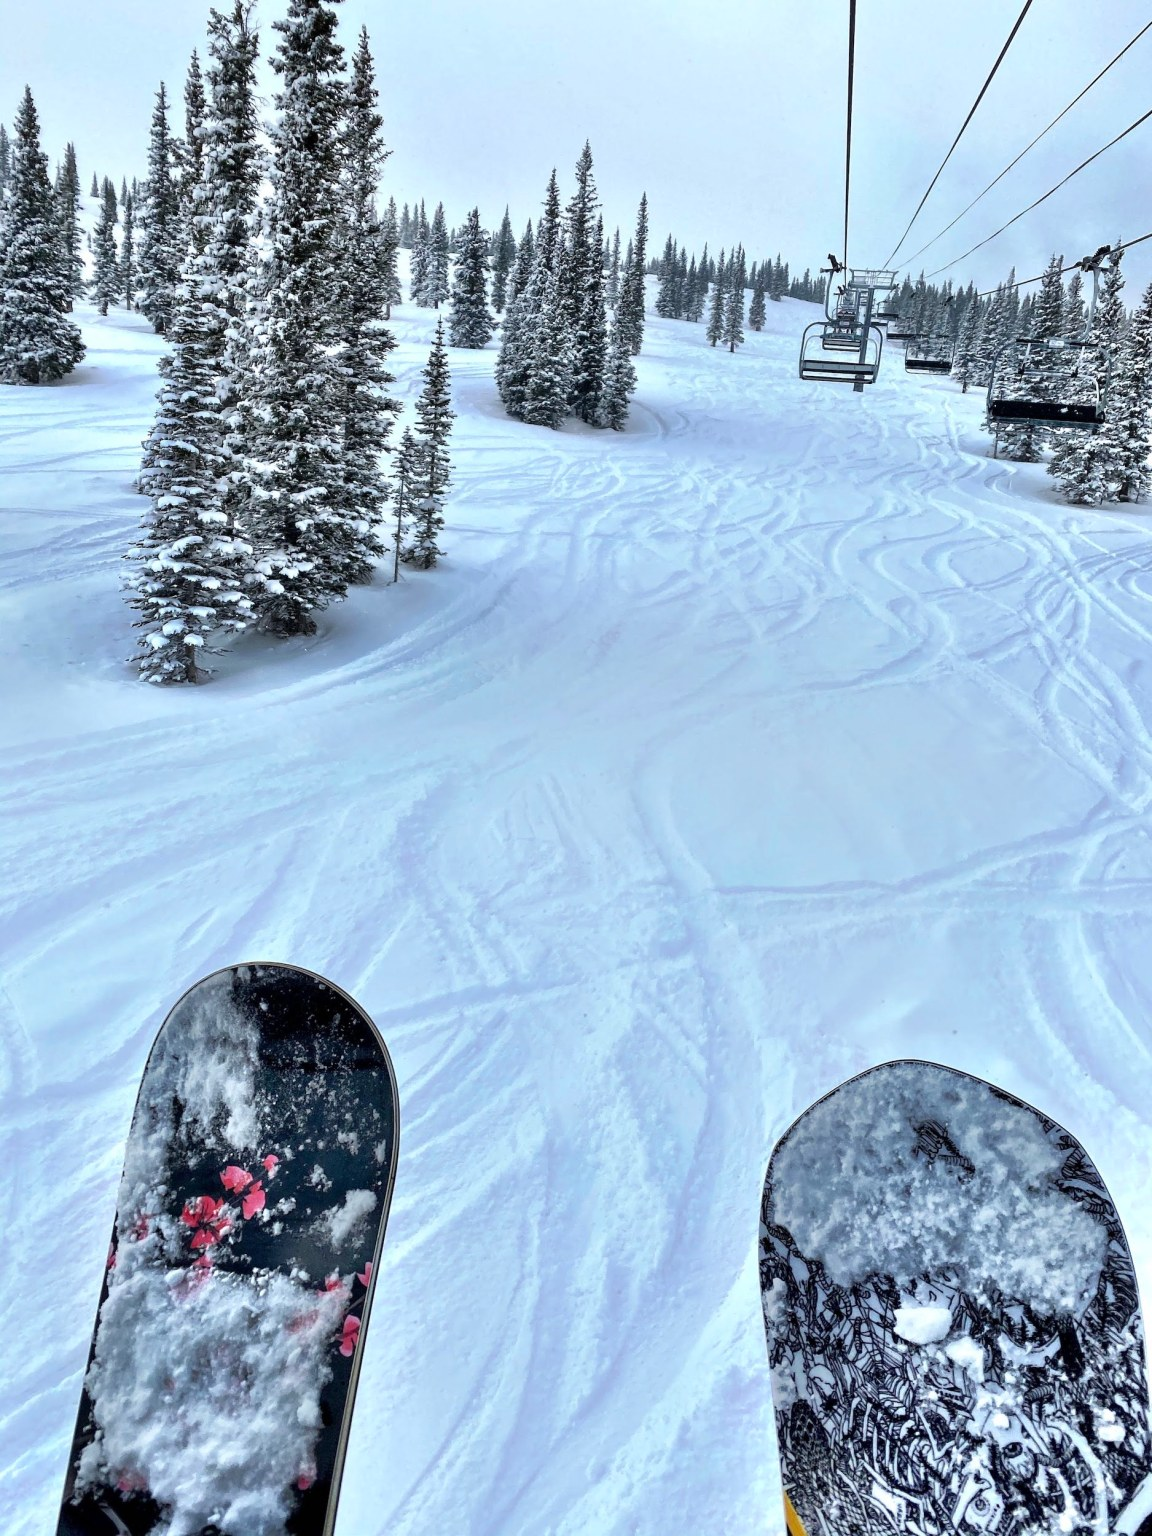 Snowboarding at Aspen Snowmass